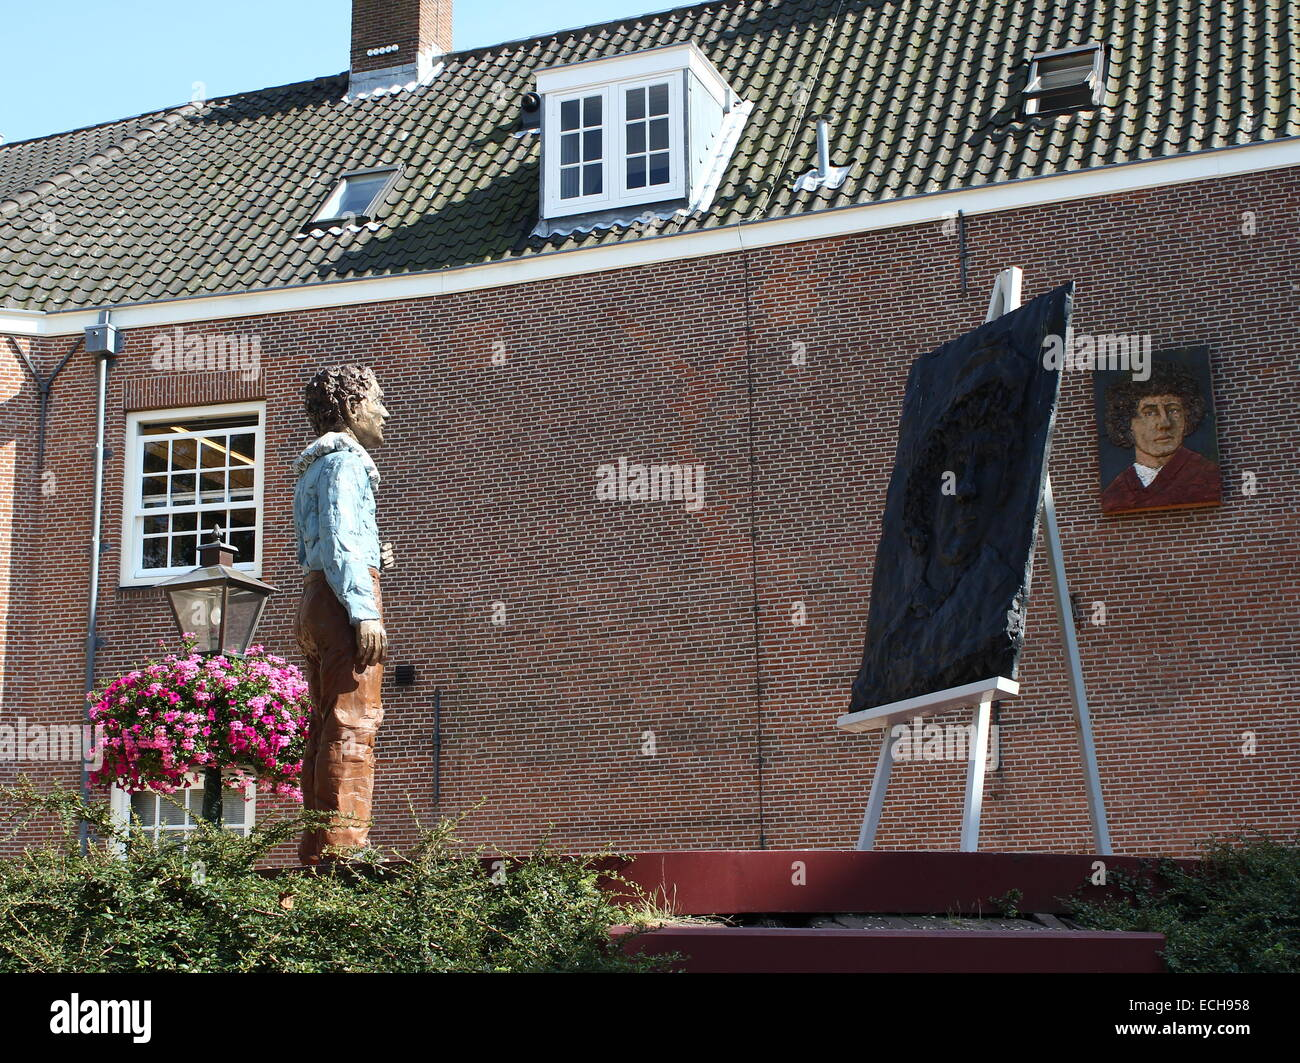 Rembrandt van Rijn monument at  Rembrandtplaats in his birthplace, the city of  Leiden, The Netherlands - Leiden Stock Photo